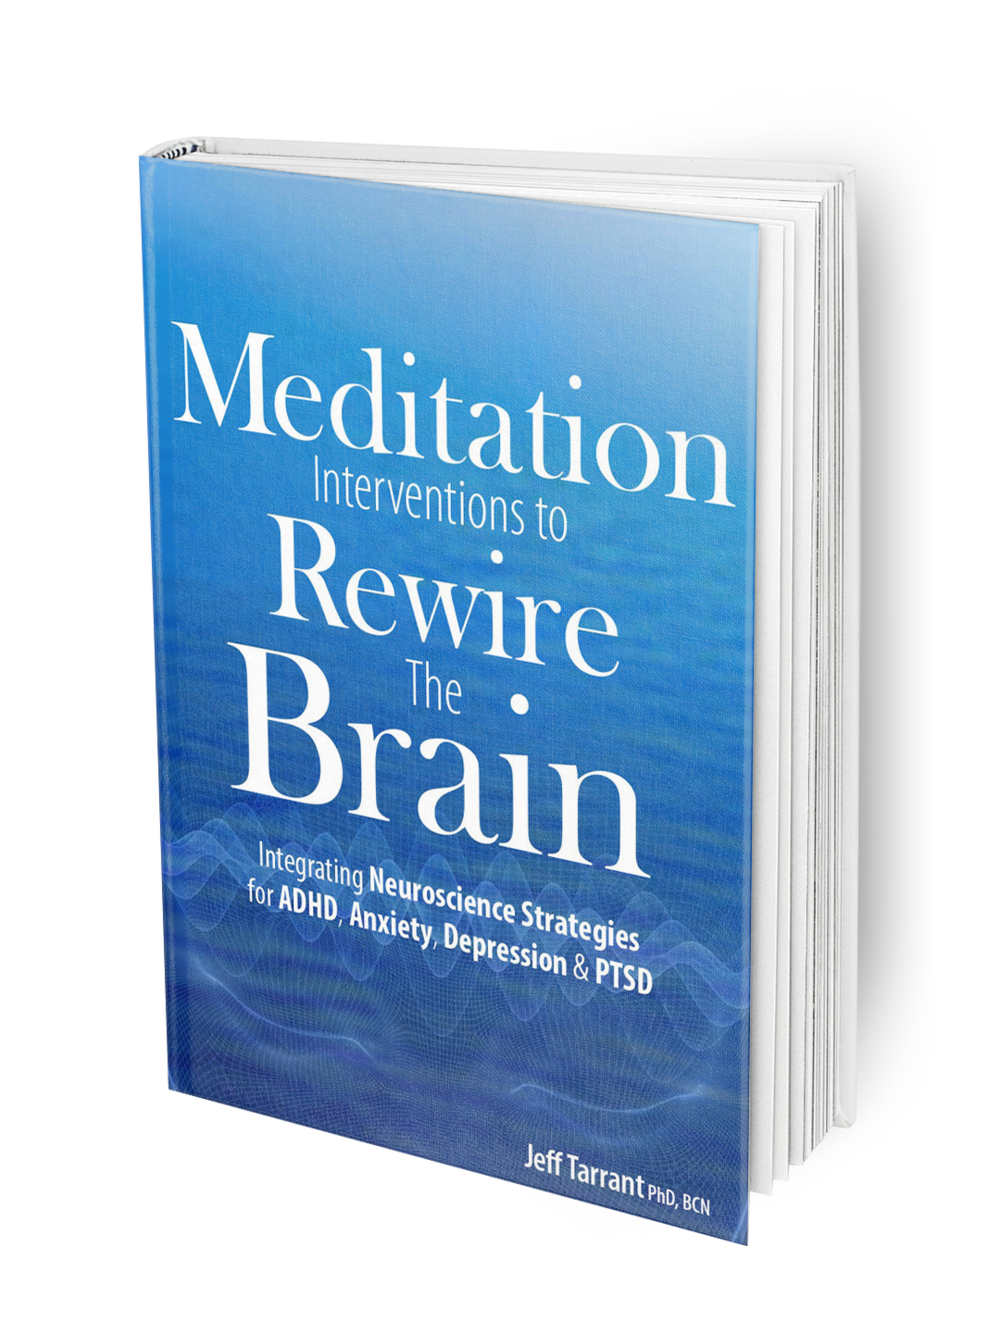 Meditation Interventions to Rewire the Brain - Integrating Neuroscience Strategies for ADHD, Anxiety, Depression & PTSD.